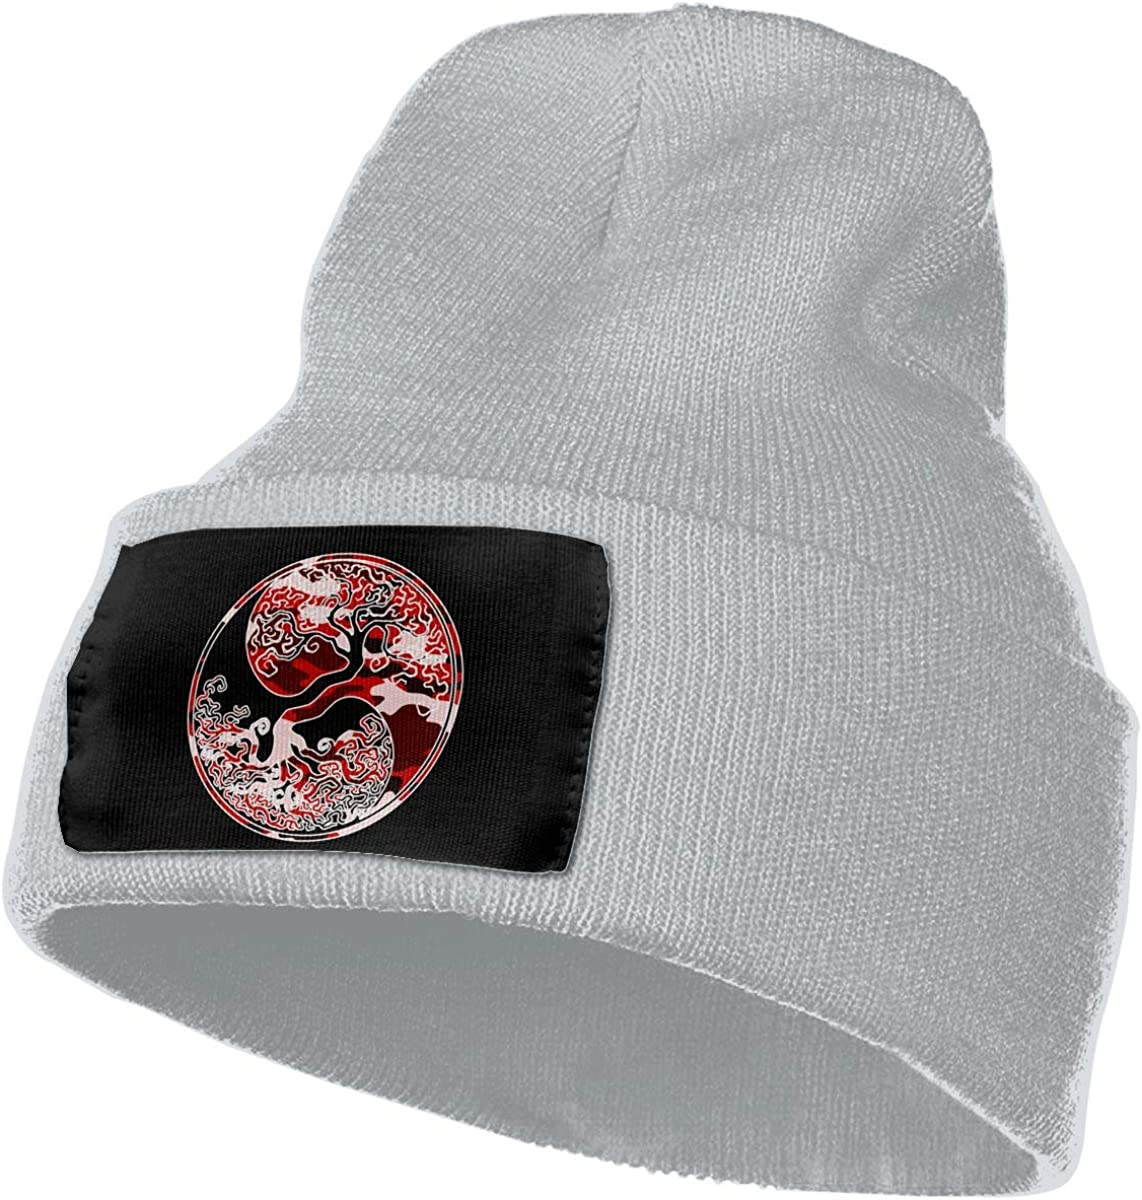 Odin Thor Viking Norse Tree Life Mens Beanie Cap Skull Cap Winter Warm Knitting Hats.